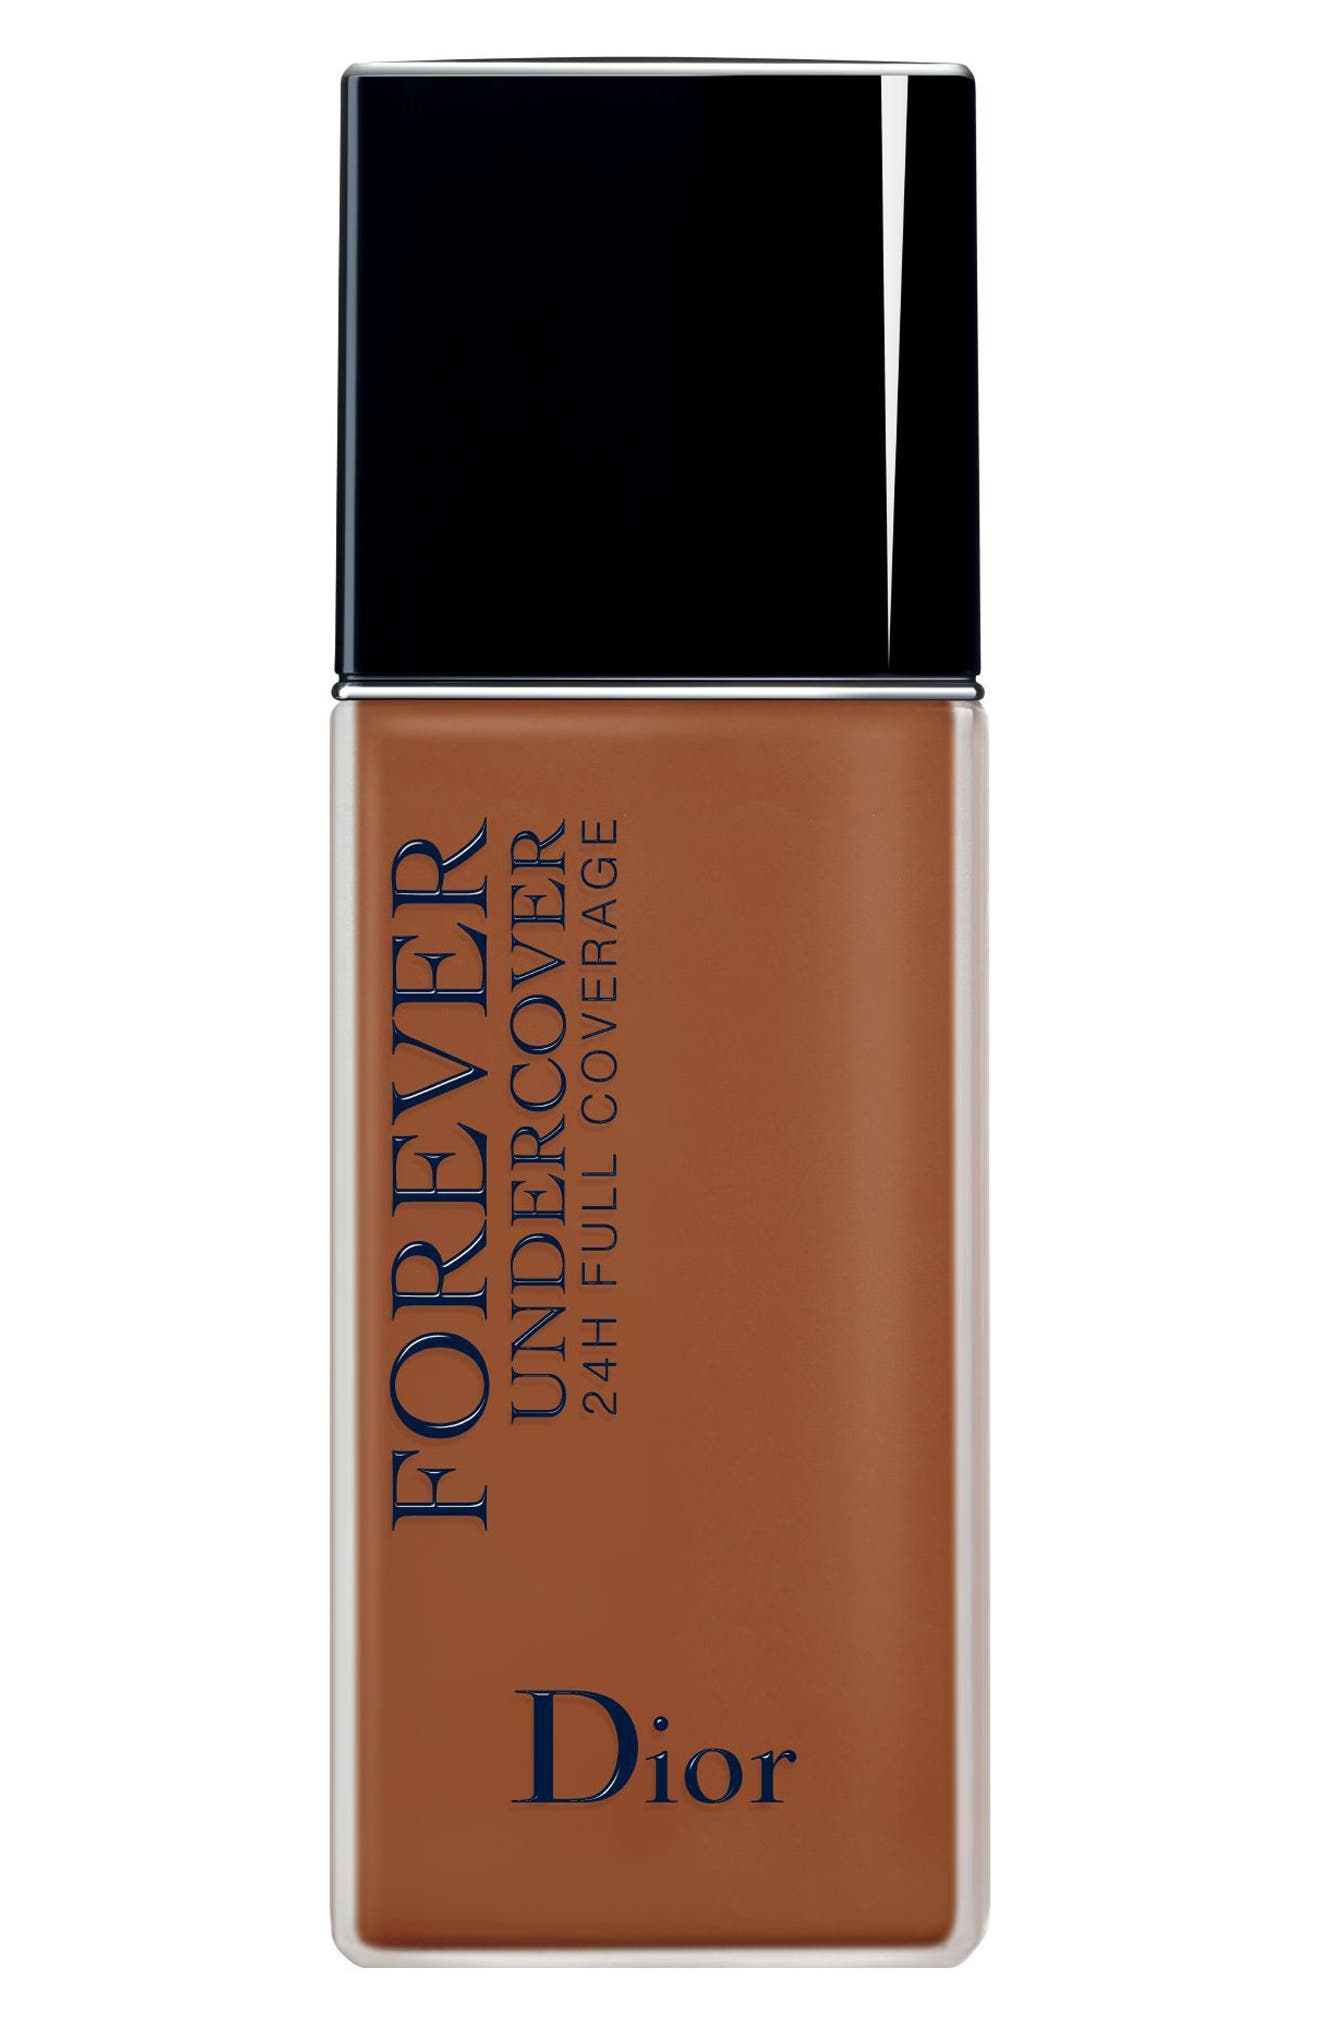 Dior Diorskin Forever Undercover 24-Hour Full Coverage Water-Based Foundation - 060 Light Mocha